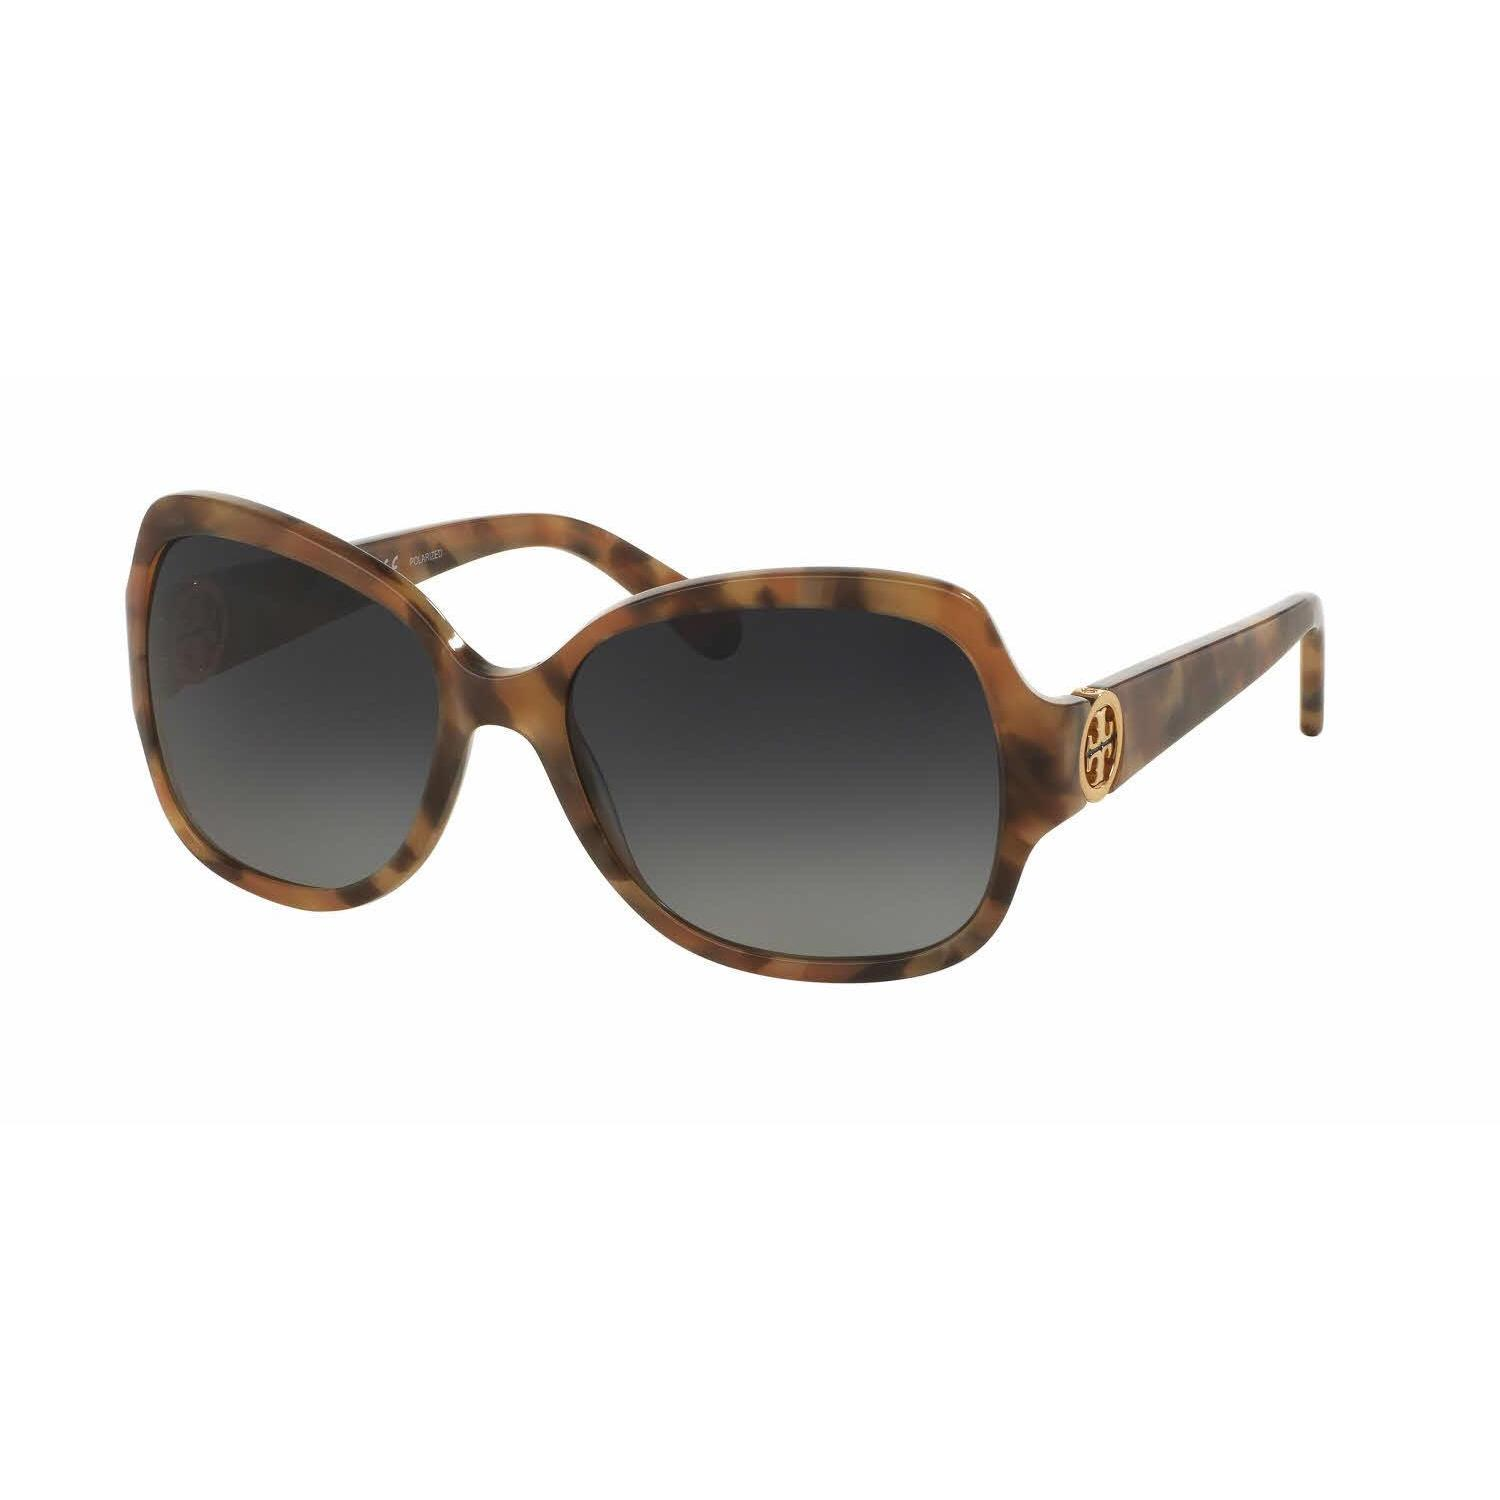 670cb97599220 Shop Tory Burch Women TY7059 3151T3 Light Brown Plastic Square Sunglasses -  Free Shipping Today - Overstock.com - 13322353